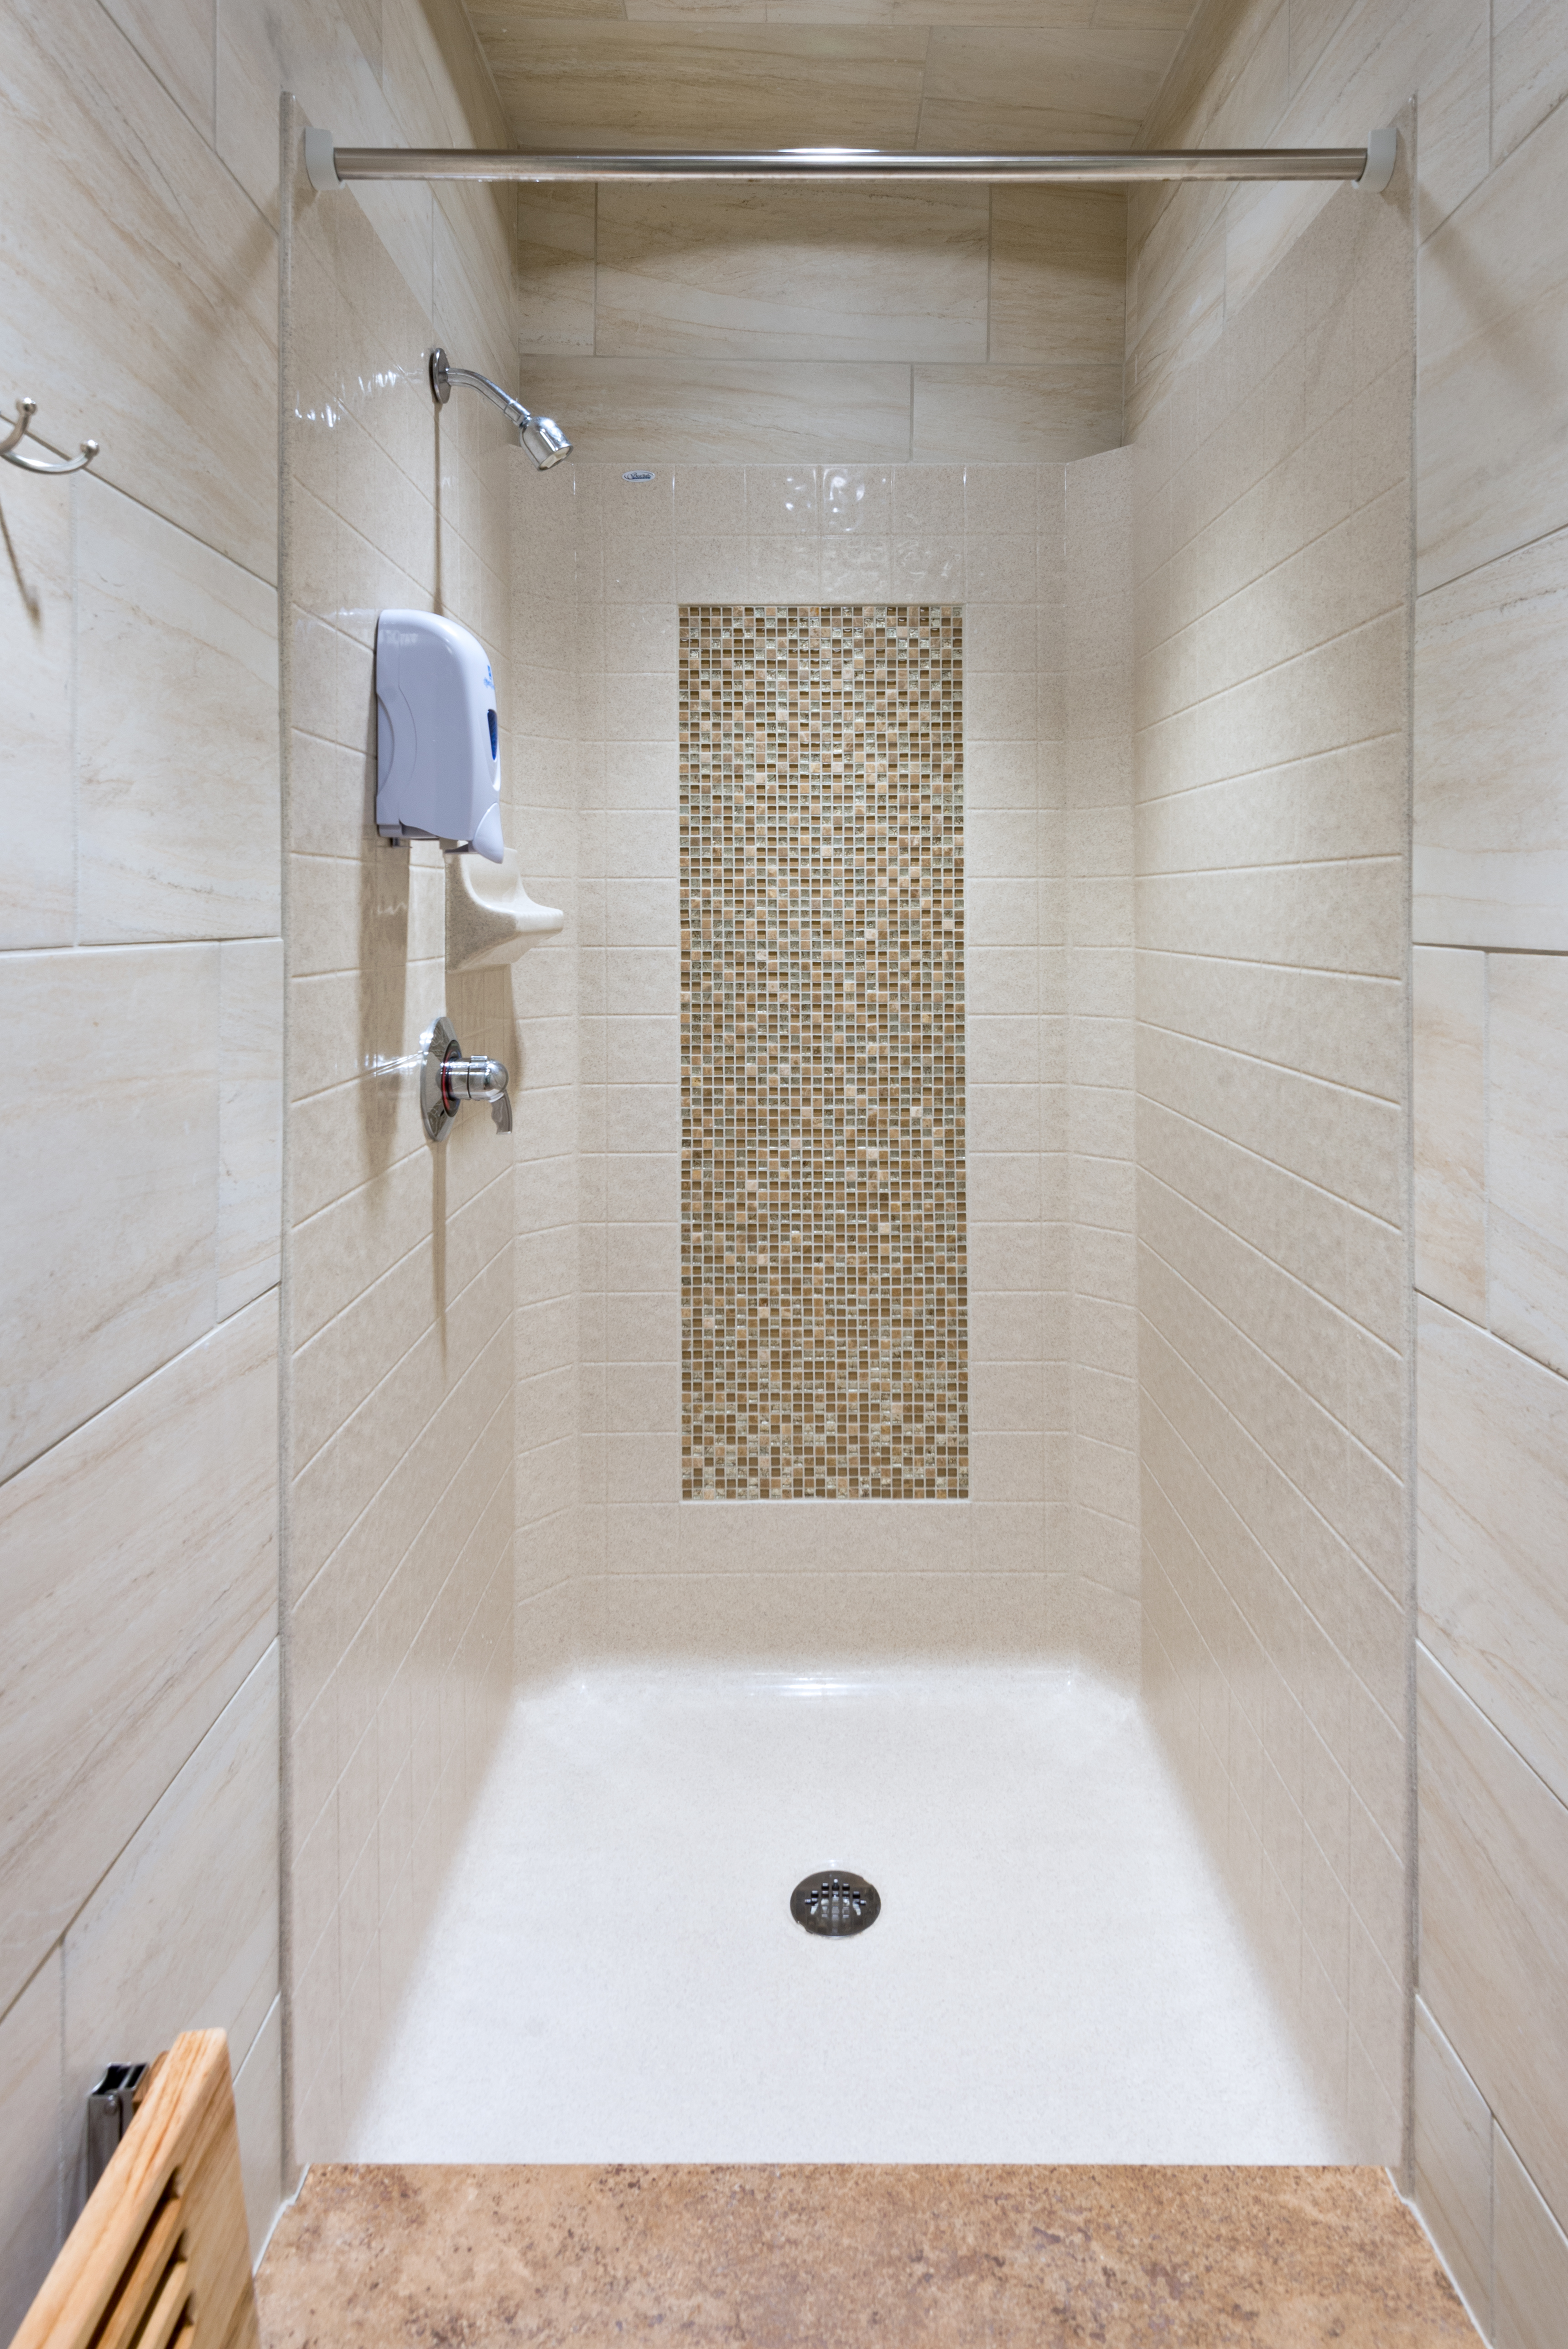 Shower Threshold Height A Better Shower From The Ground Up Building Design Construction